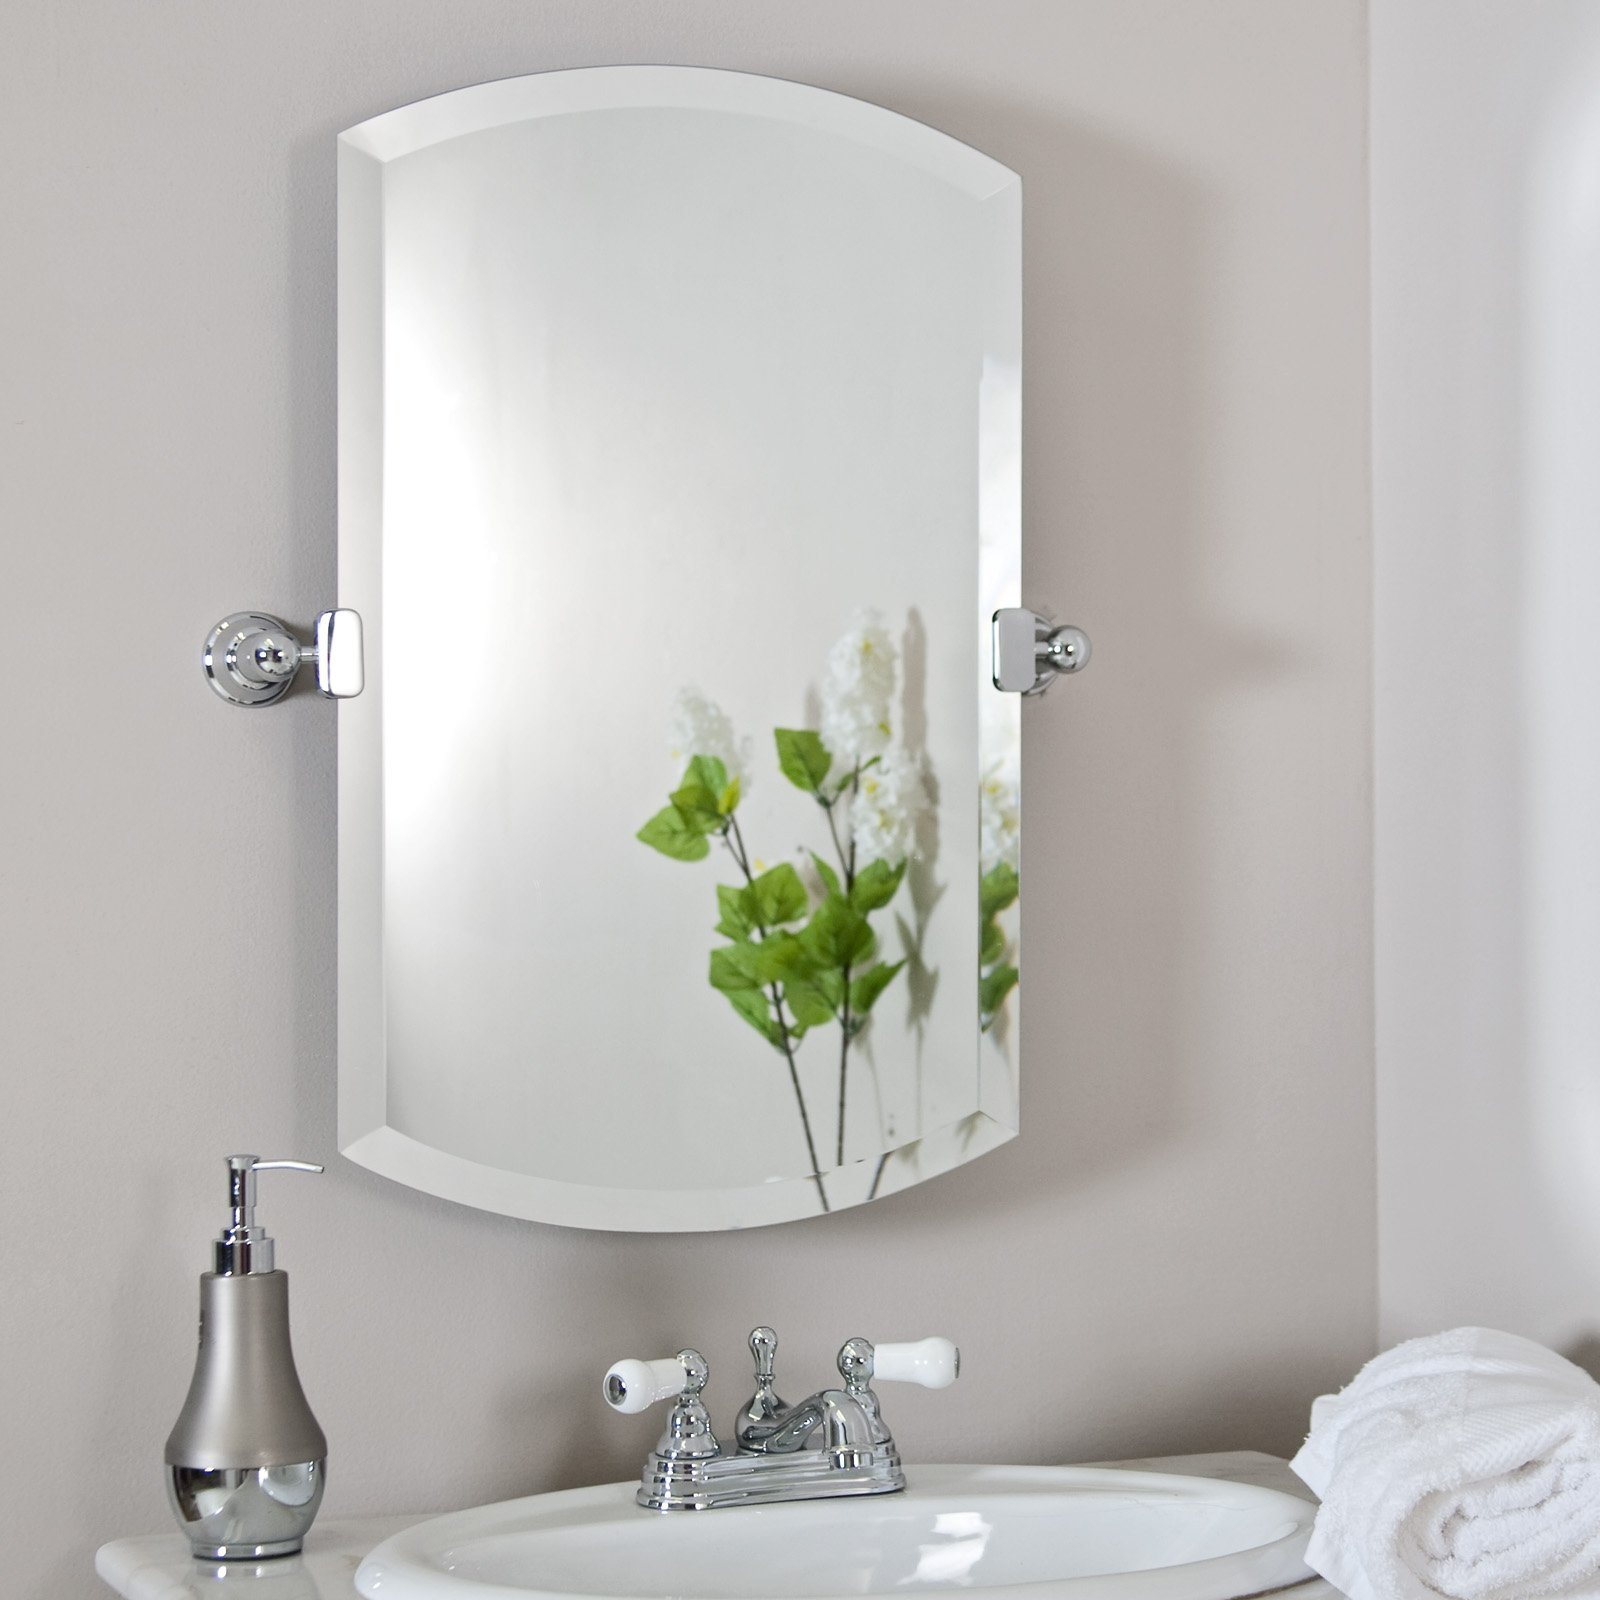 Mirror: Unusual Mirrors for Bathrooms (#5 of 15 Photos)